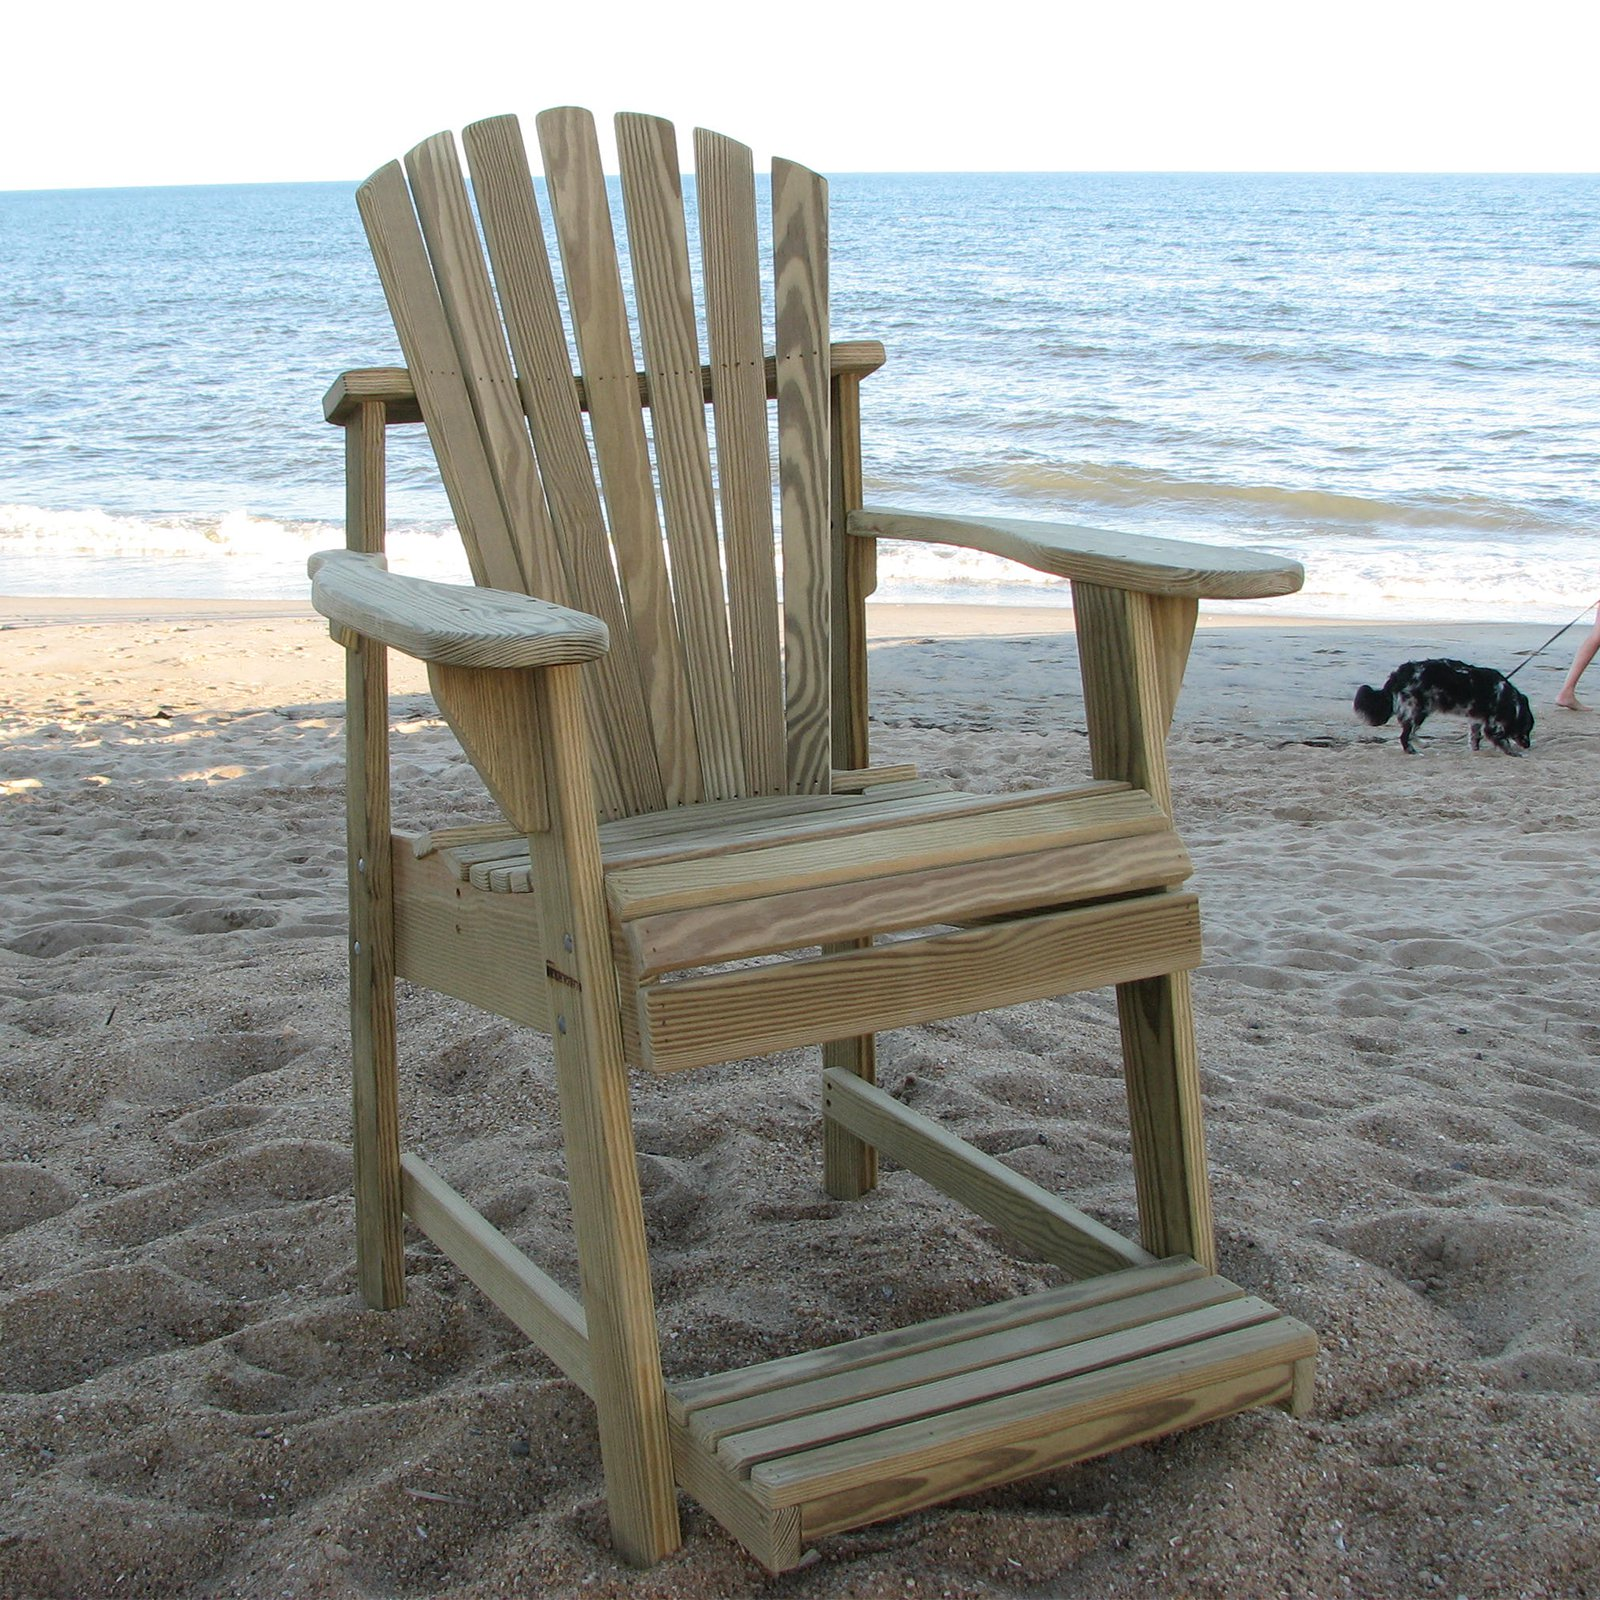 weathercraft designers choice treated balcony adirondack chair with rh walmart com costco outdoor furniture adirondack chairs Adirondack Chair Plans & Templates